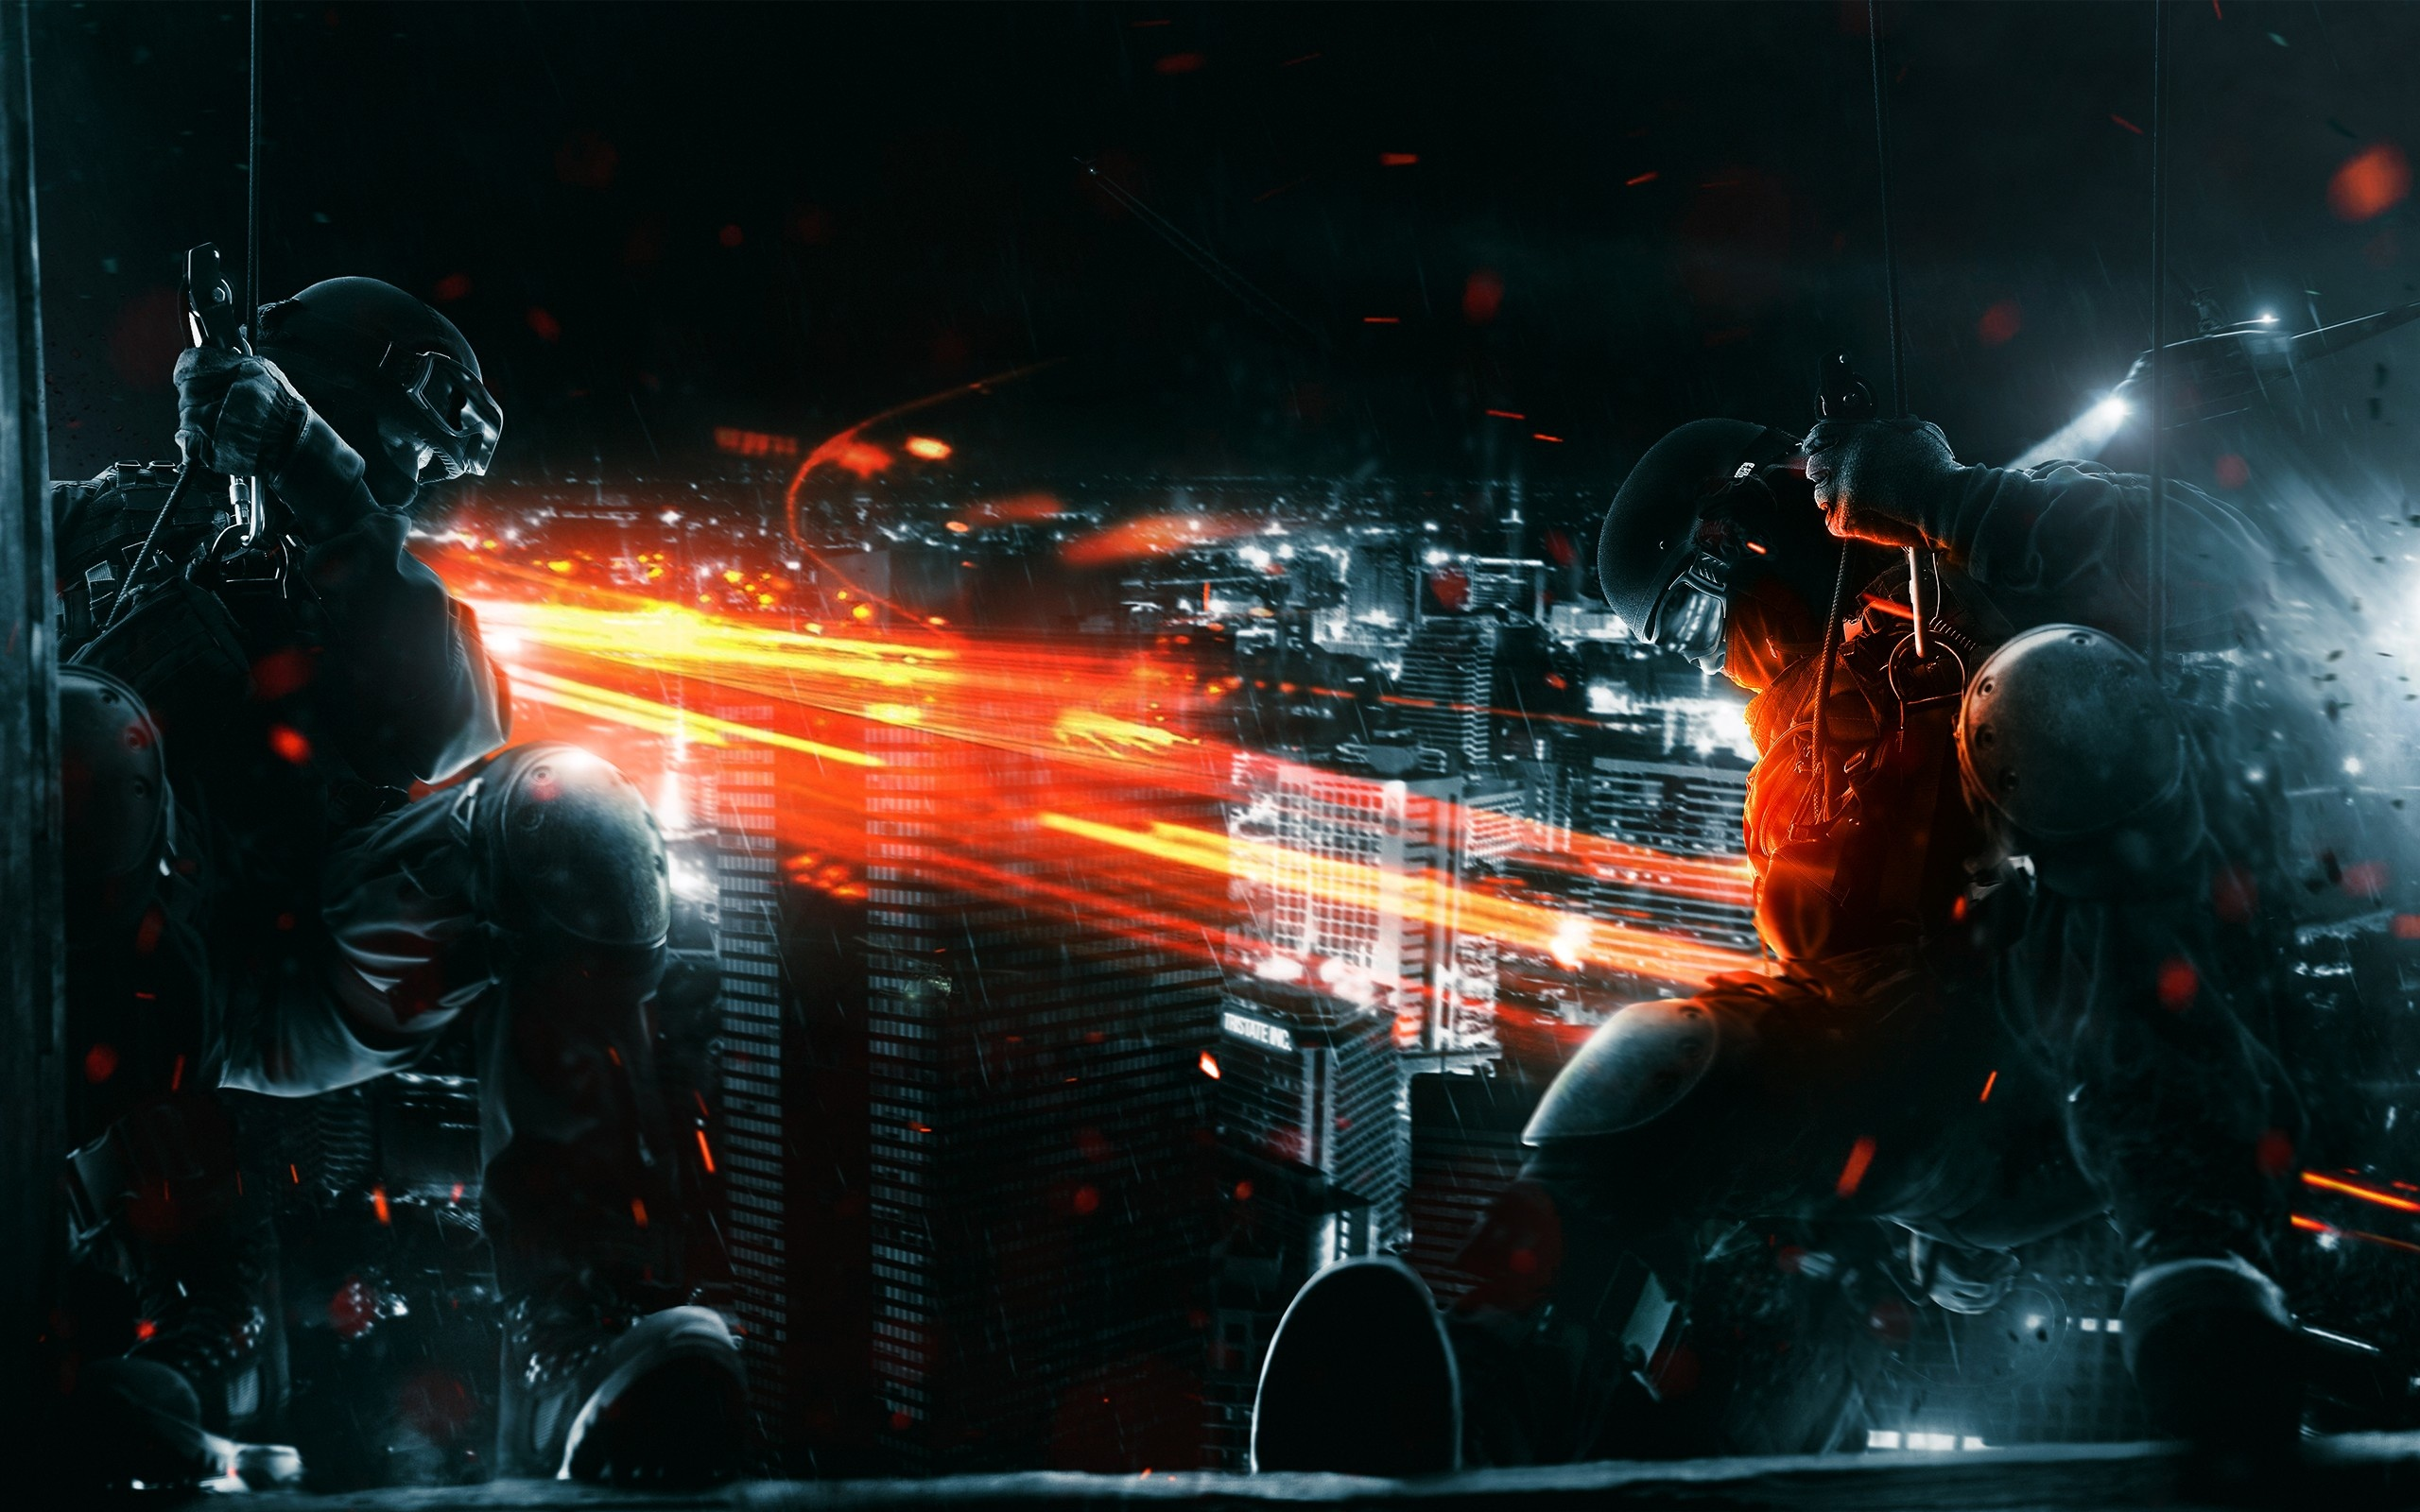 Battlefield 3 Spec Ops Game desktop wallpaper WallpaperPixel 2560x1600